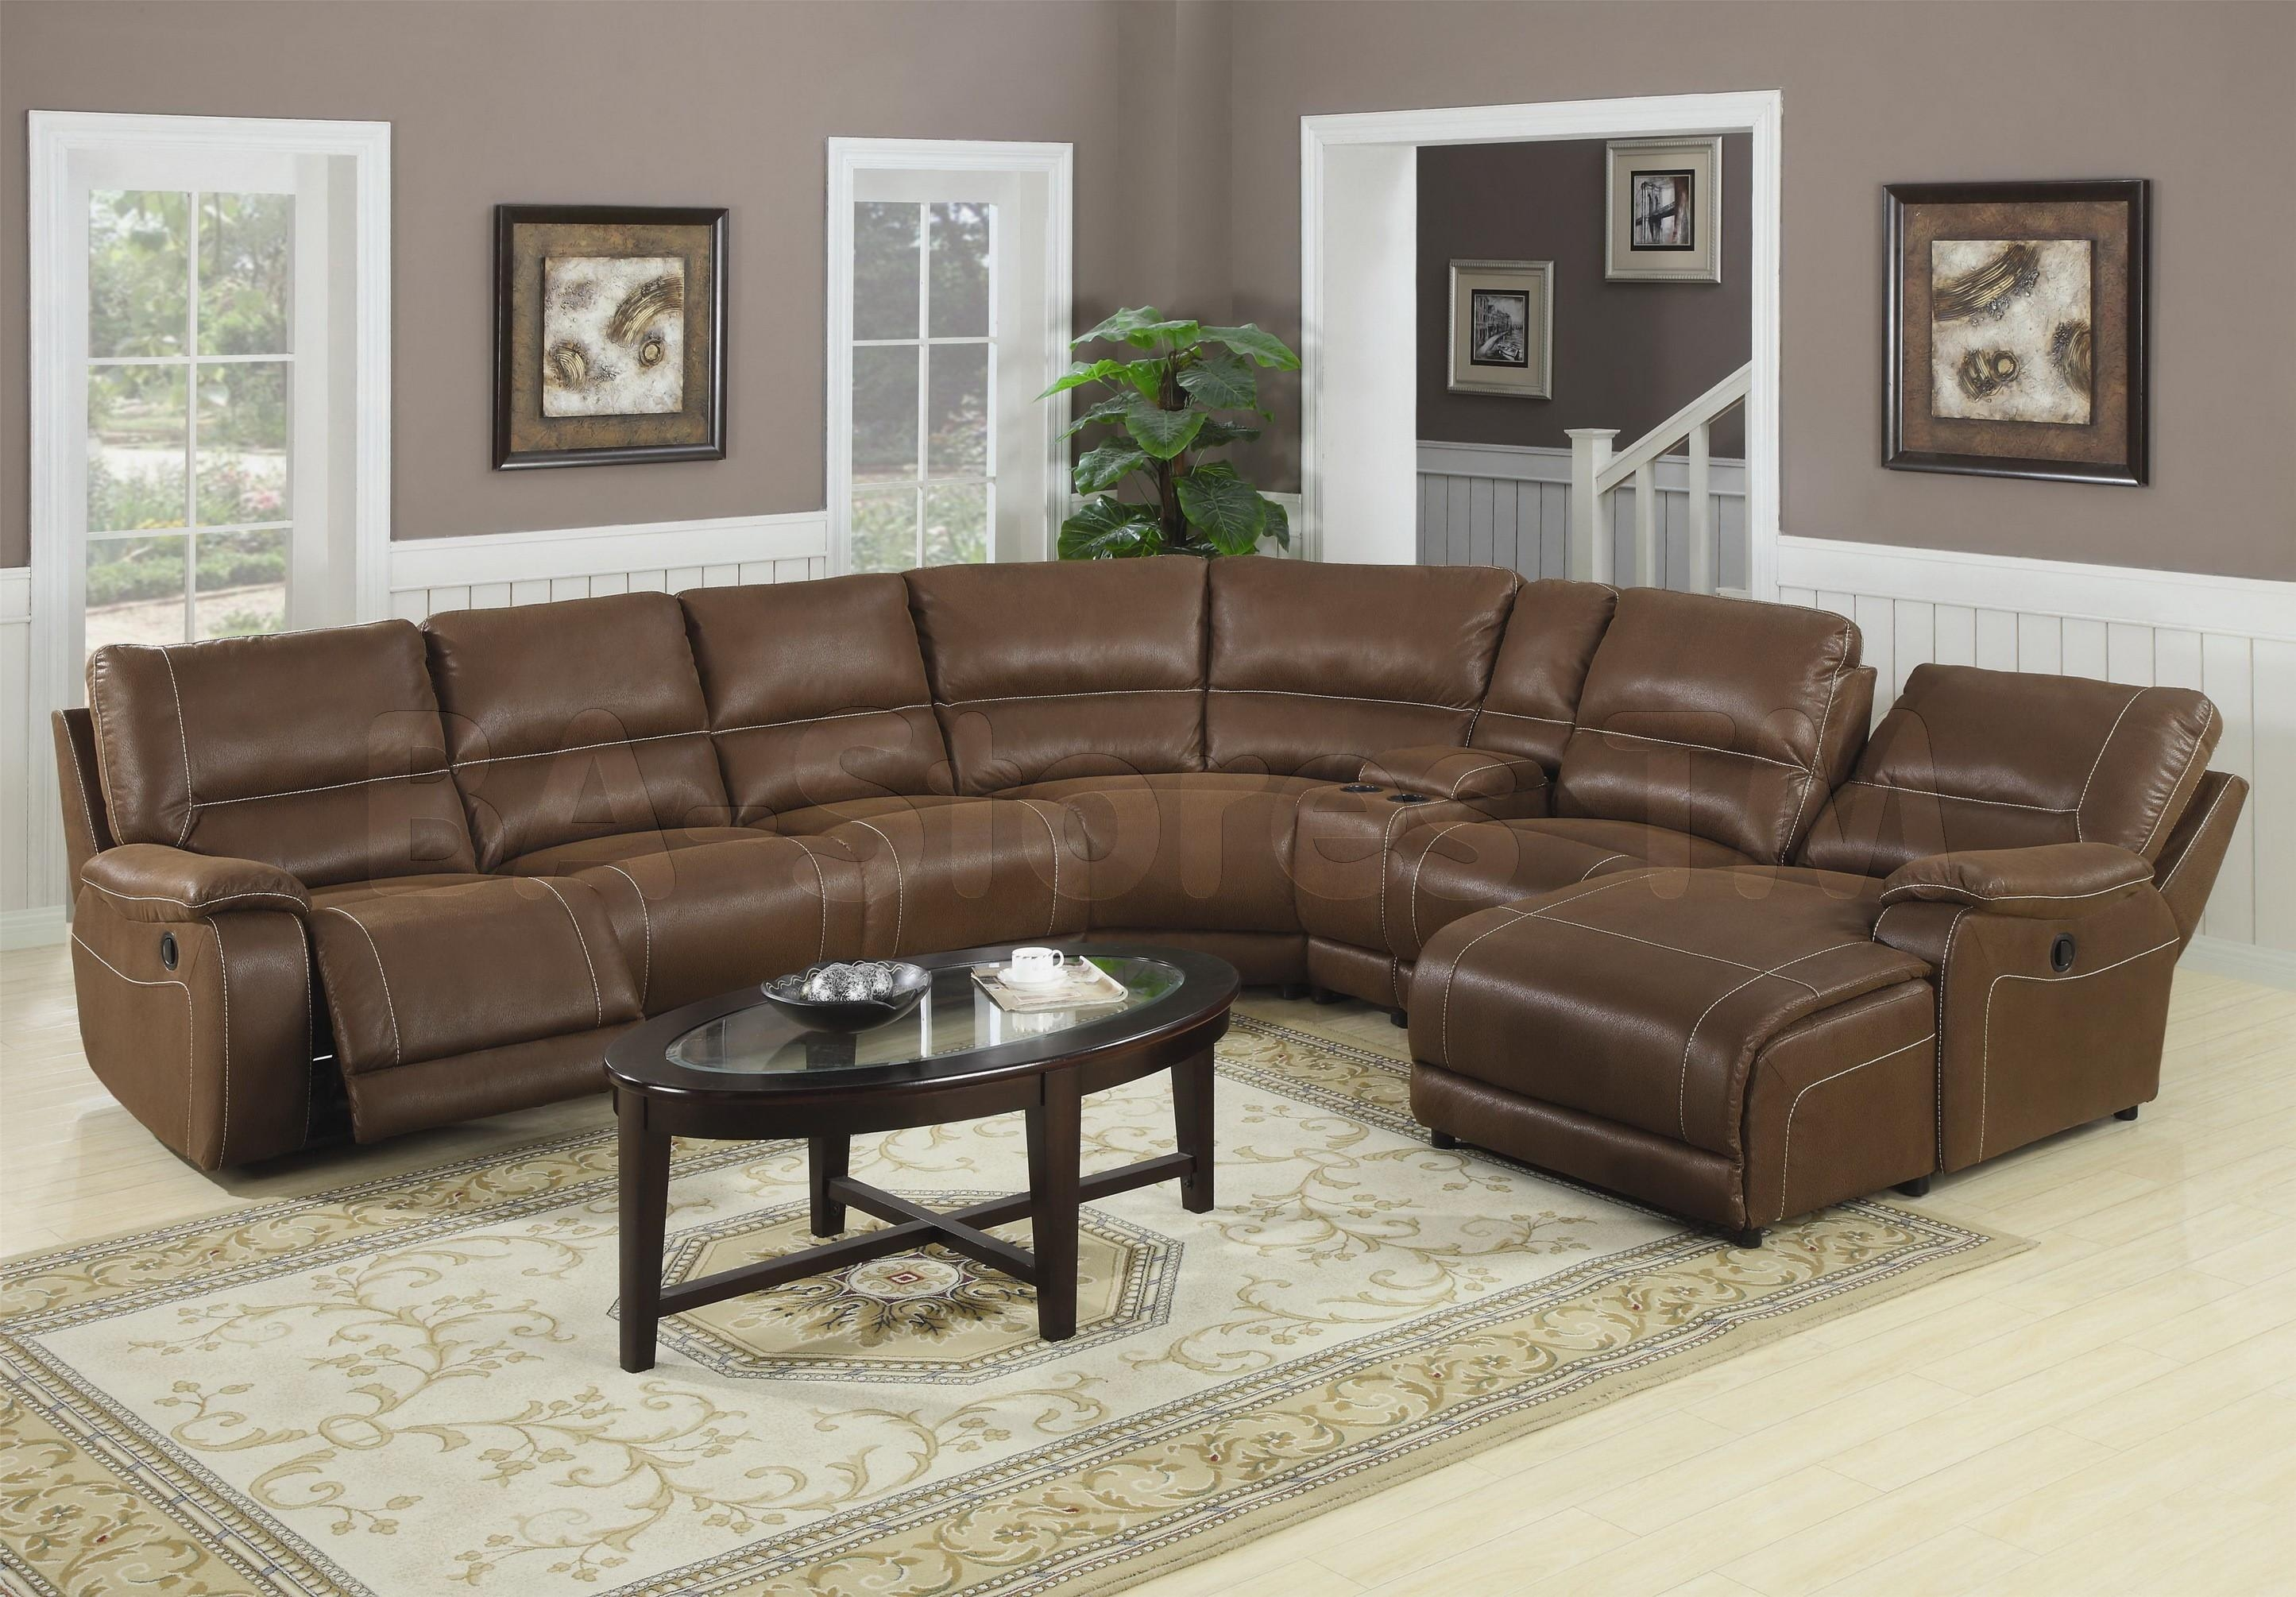 Decorating: Fill Your Home With Comfy Costco Sectionals Sofa For Inside Berkline Couches (View 20 of 20)